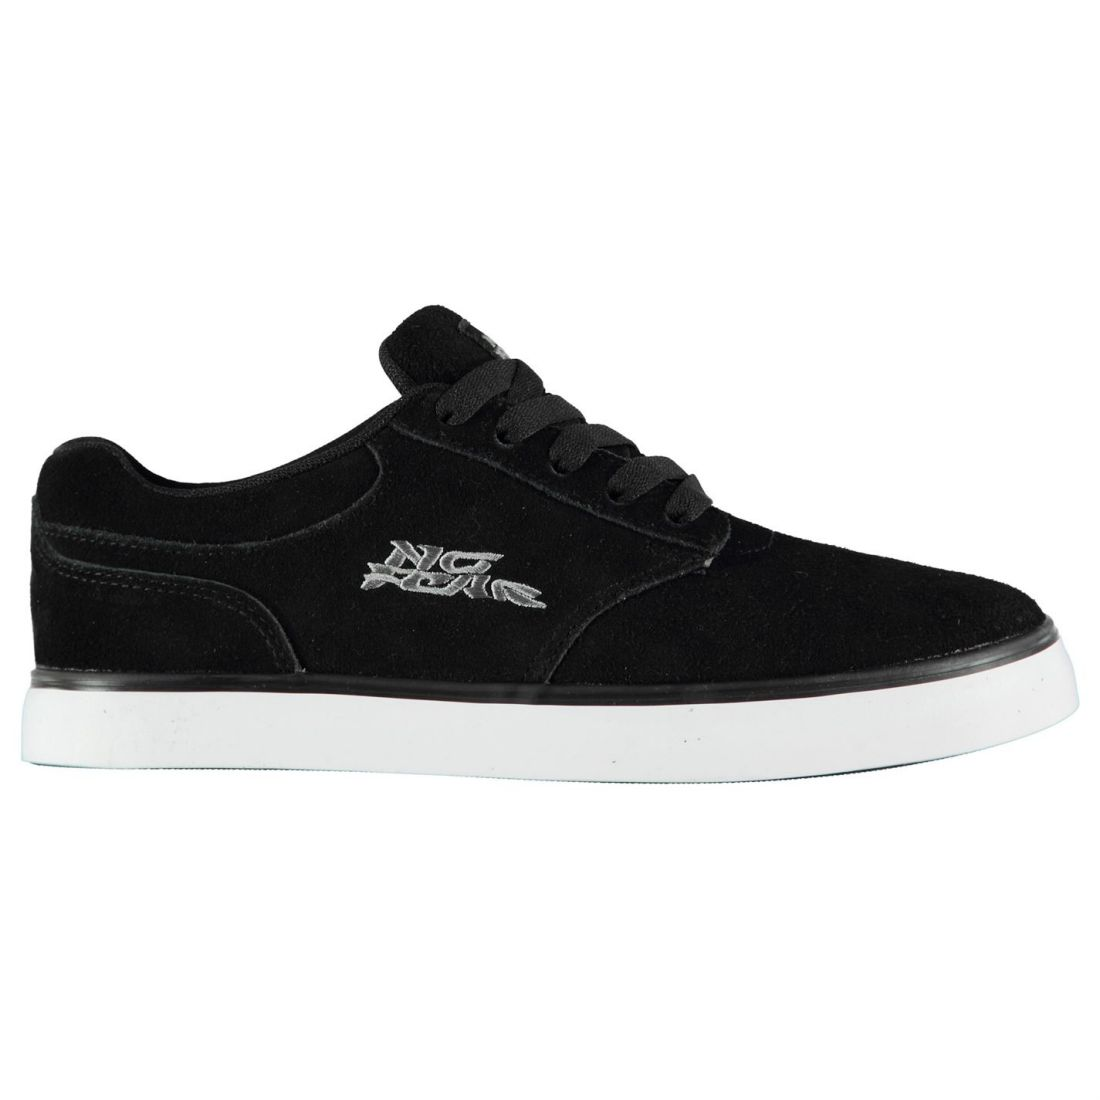 6b3ac0ed30 No Fear Mens Pier 7 Vulc Trainers Skate Shoes Lace Up Padded Ankle Collar  Tongue